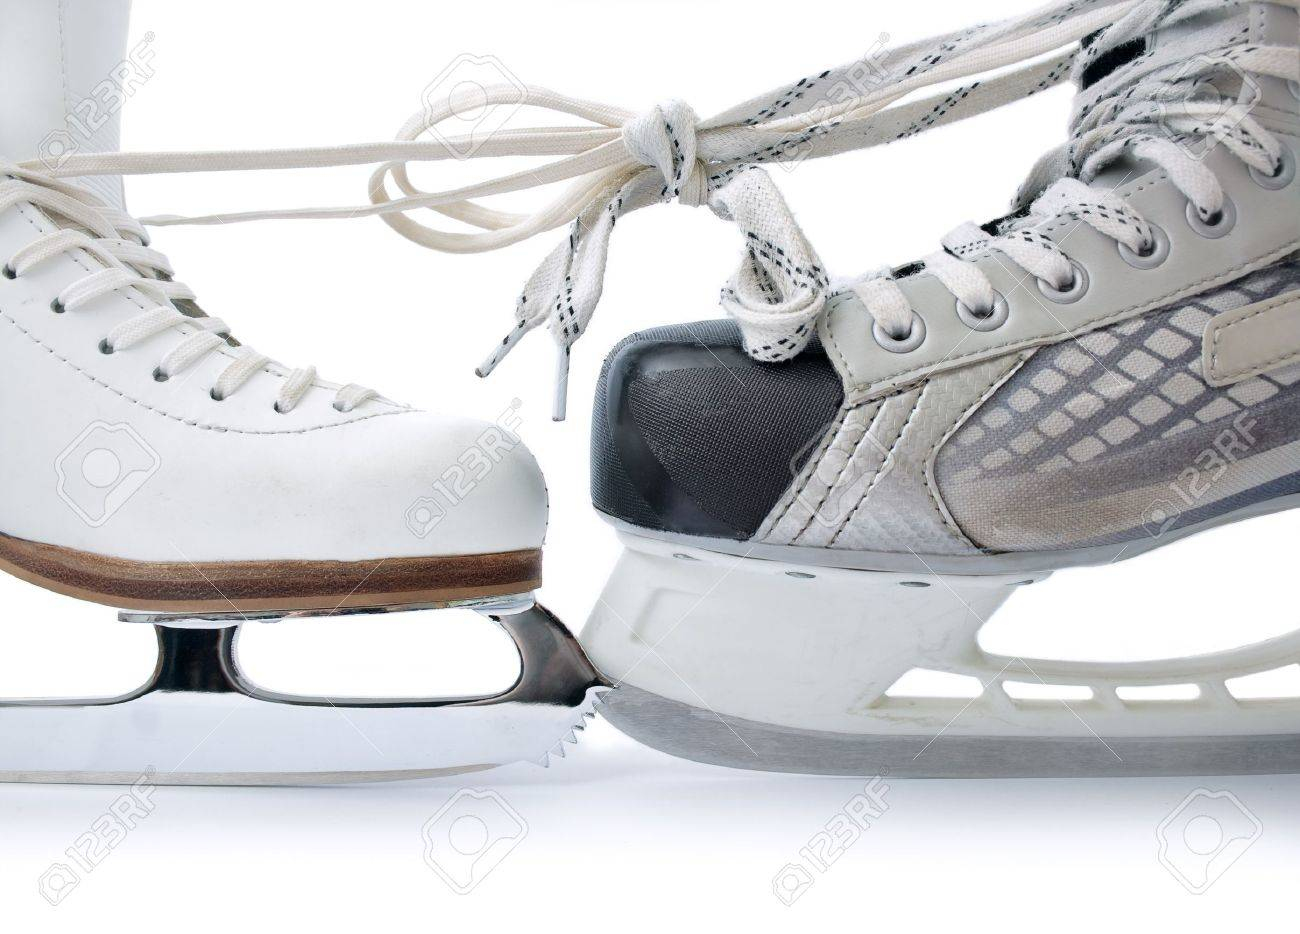 Skate for figure skating and  hockey skate tied against each other close up isolated on white background Stock Photo - 8871194